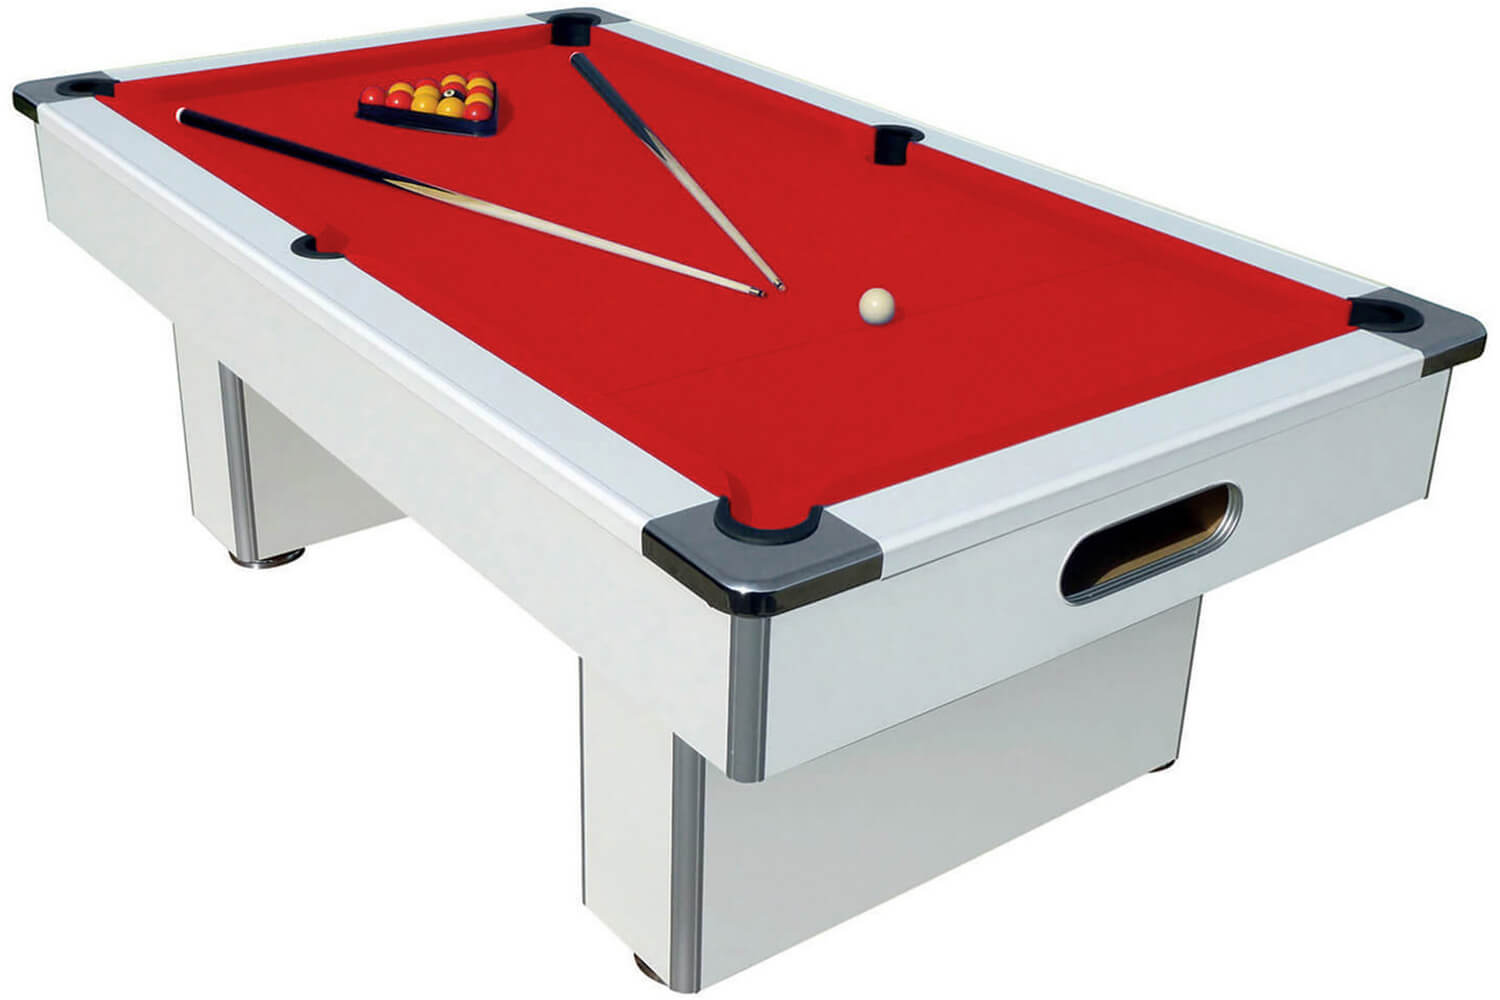 Pleasing Slimline Slate Bed Pool Table Home Interior And Landscaping Sapresignezvosmurscom